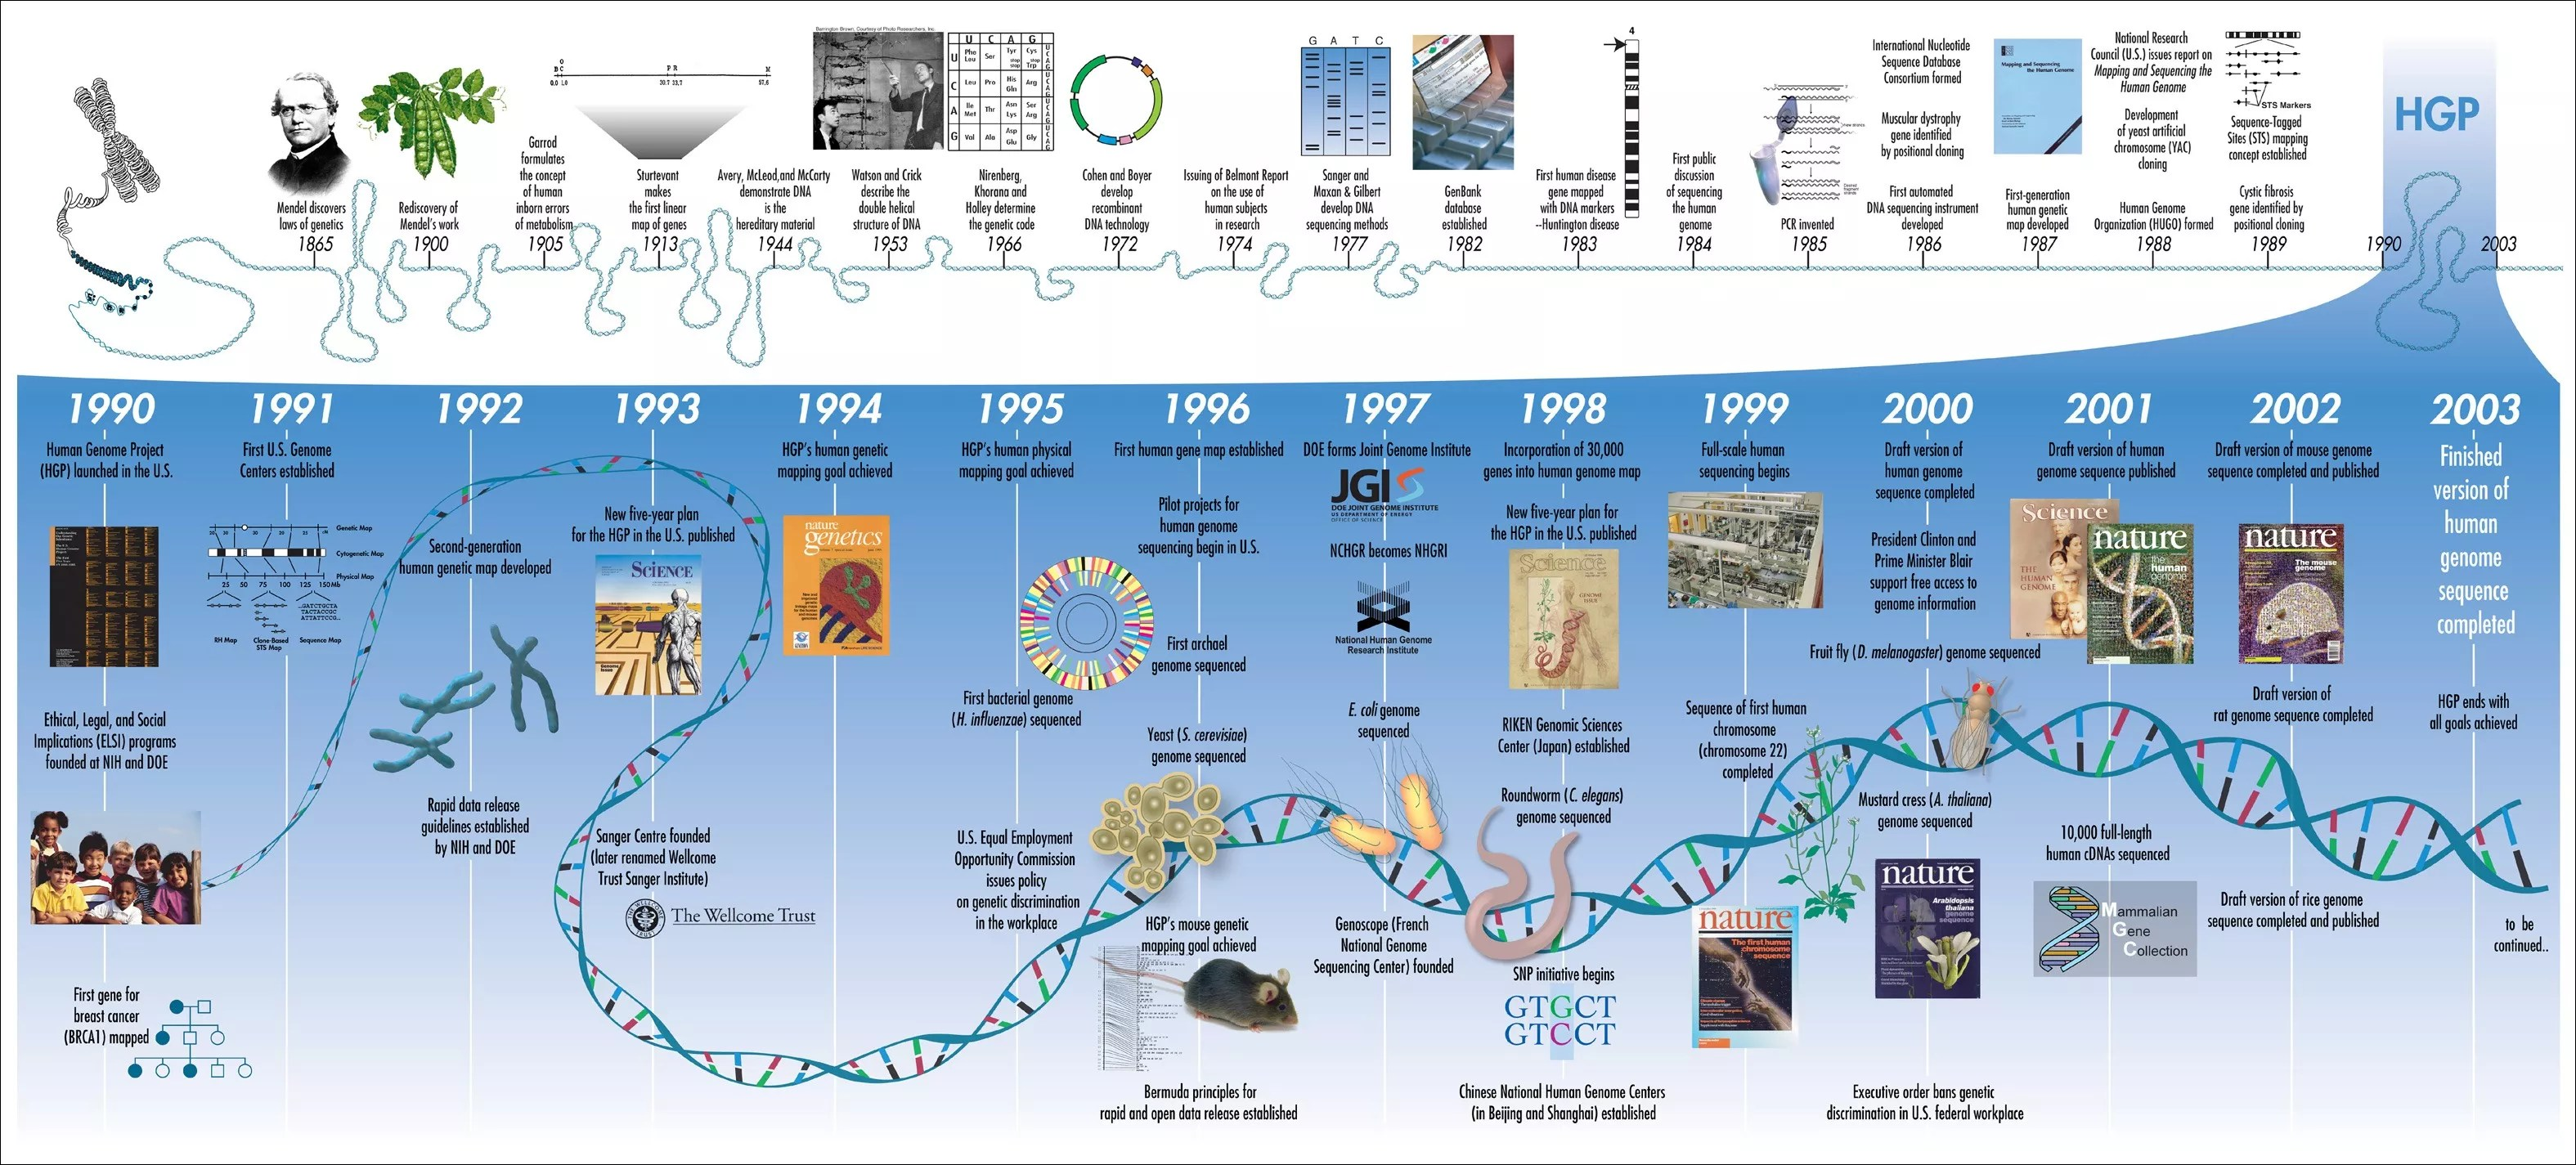 The Human Genome Project Timeline contains major milestones in genetic research from 1865 to 2003 [Credit: Human Genome Project Timeline]